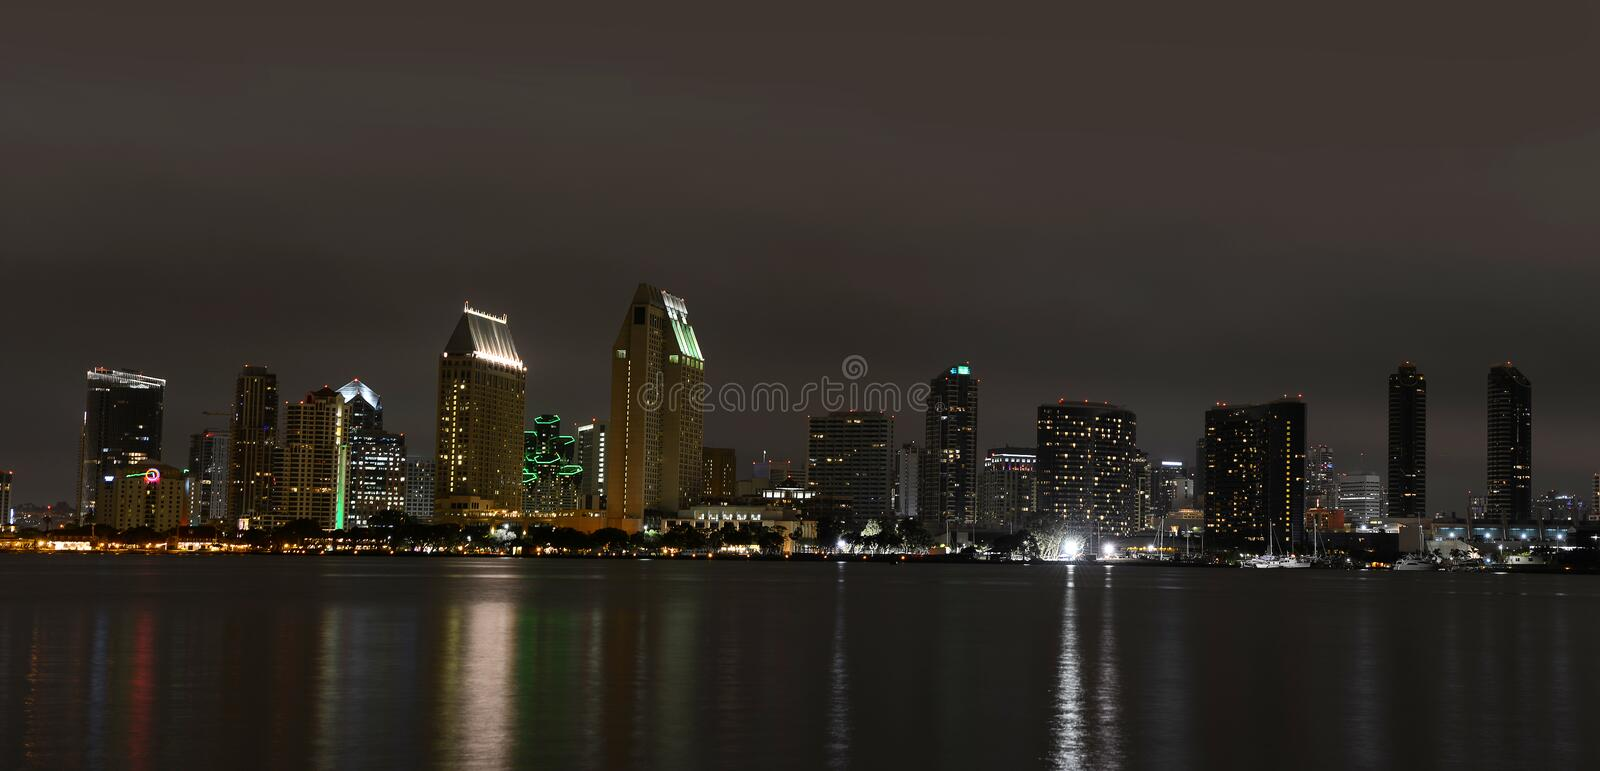 San Diego skyline at night. San Diego, California skylie panoramic view at nigh with reflections on the water royalty free stock photography